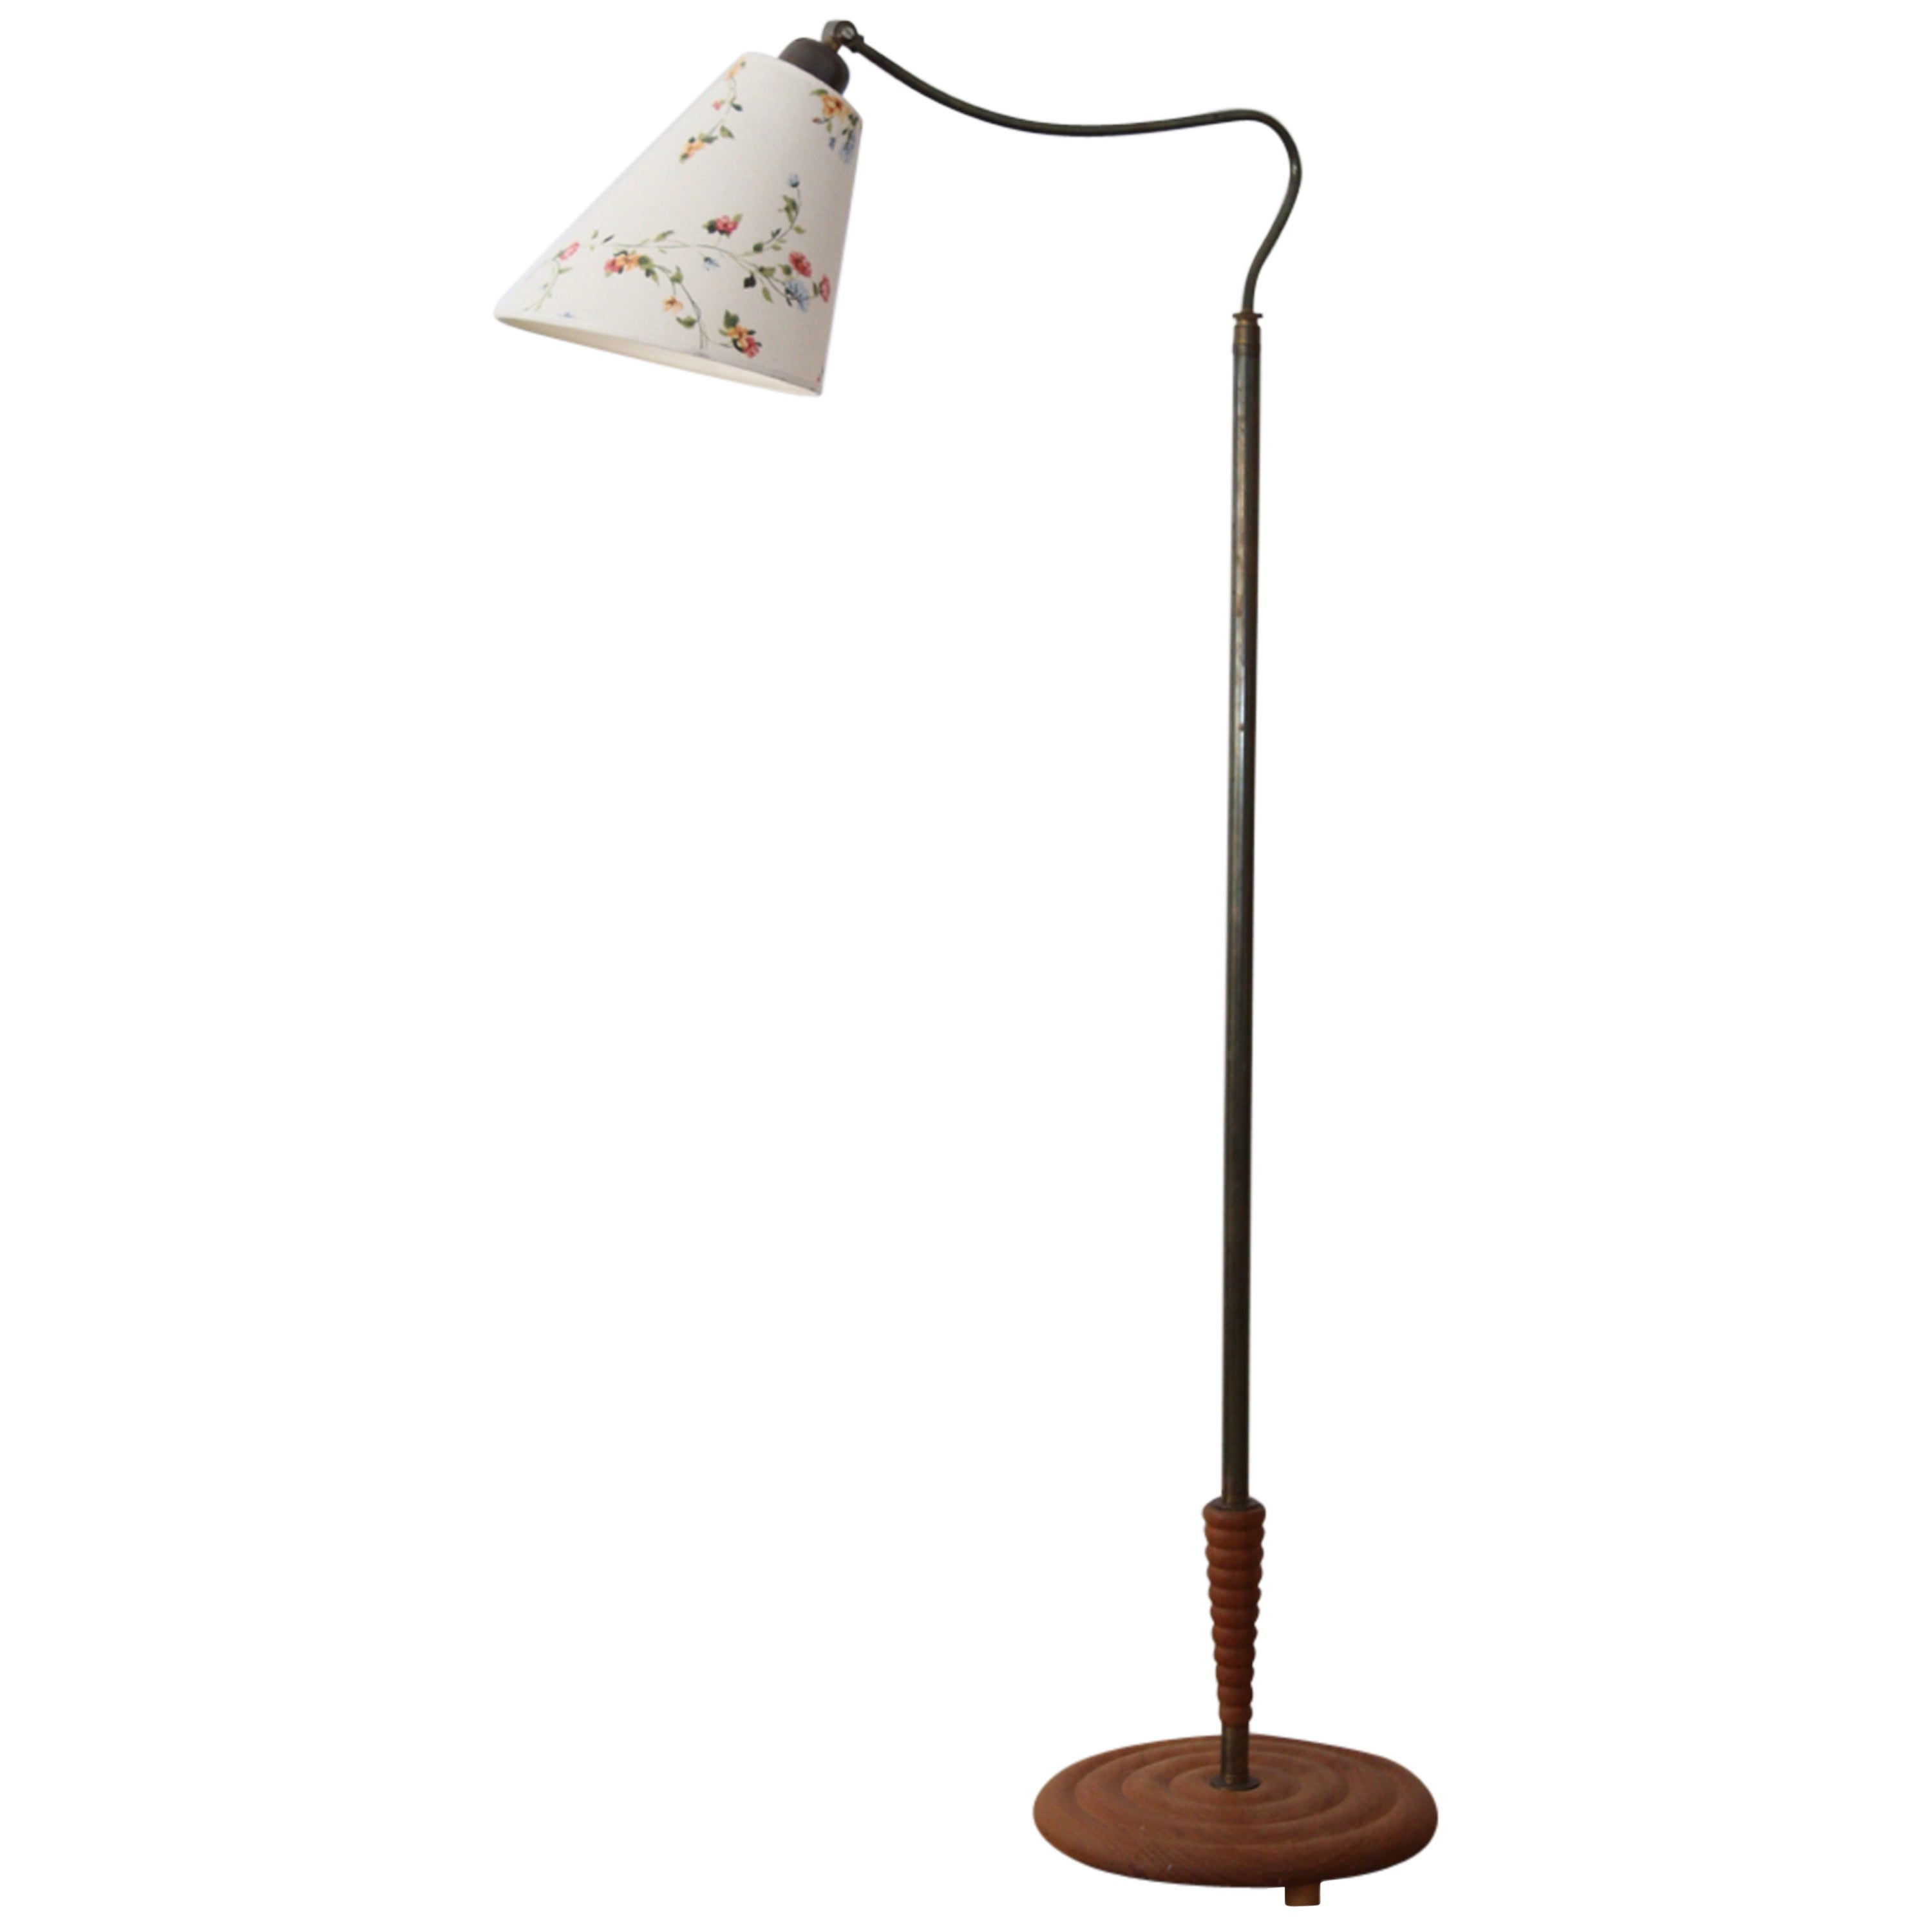 Swedish Designer, Organic Functionalist Floor Lamp, Brass, Wood, Fabric, 1940s